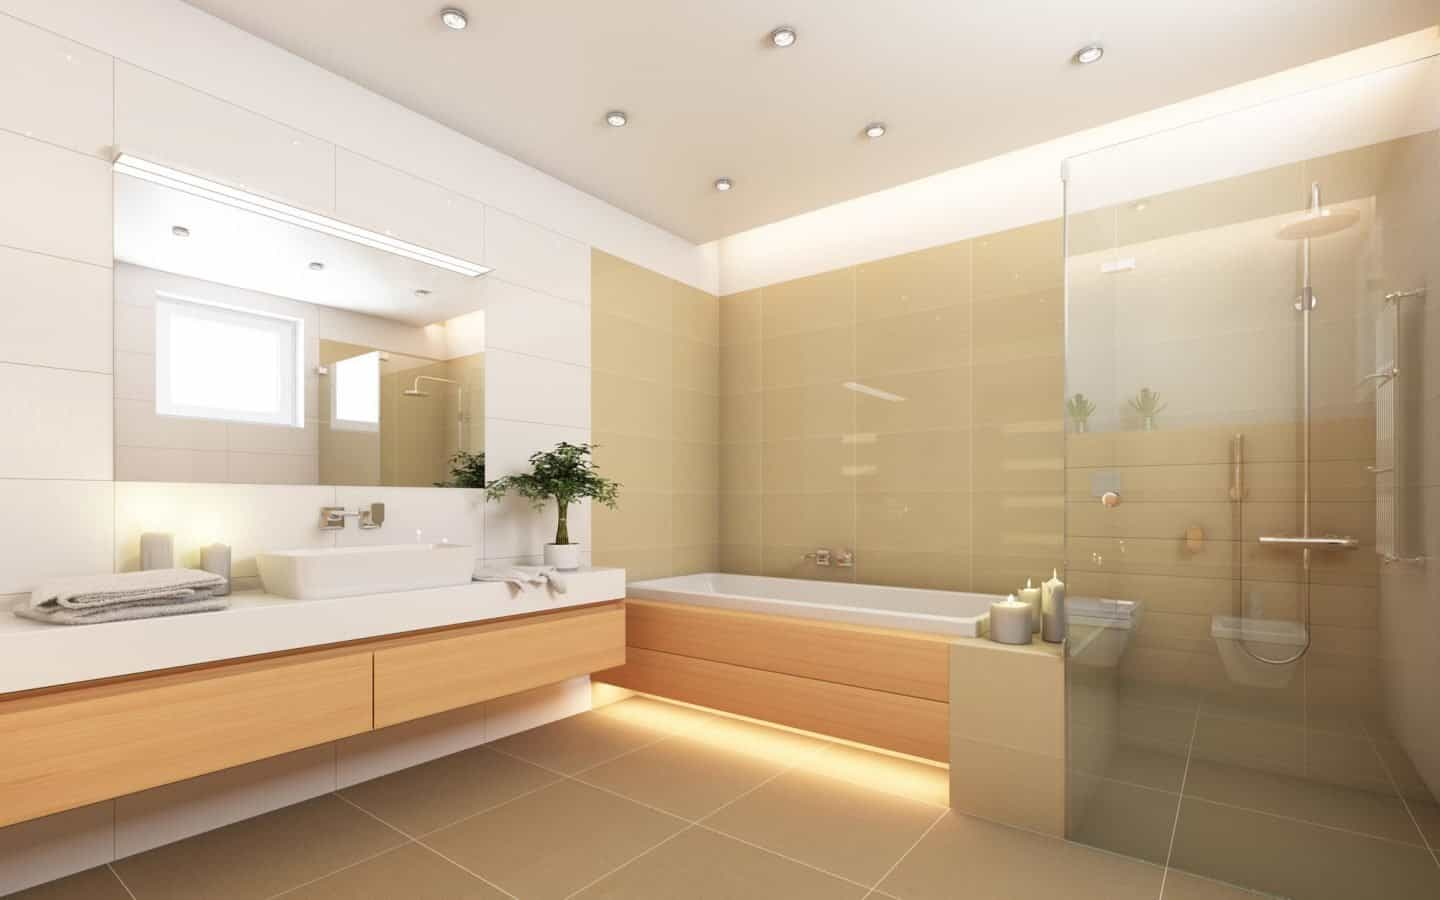 7 Bathroom Design Trends For This Year